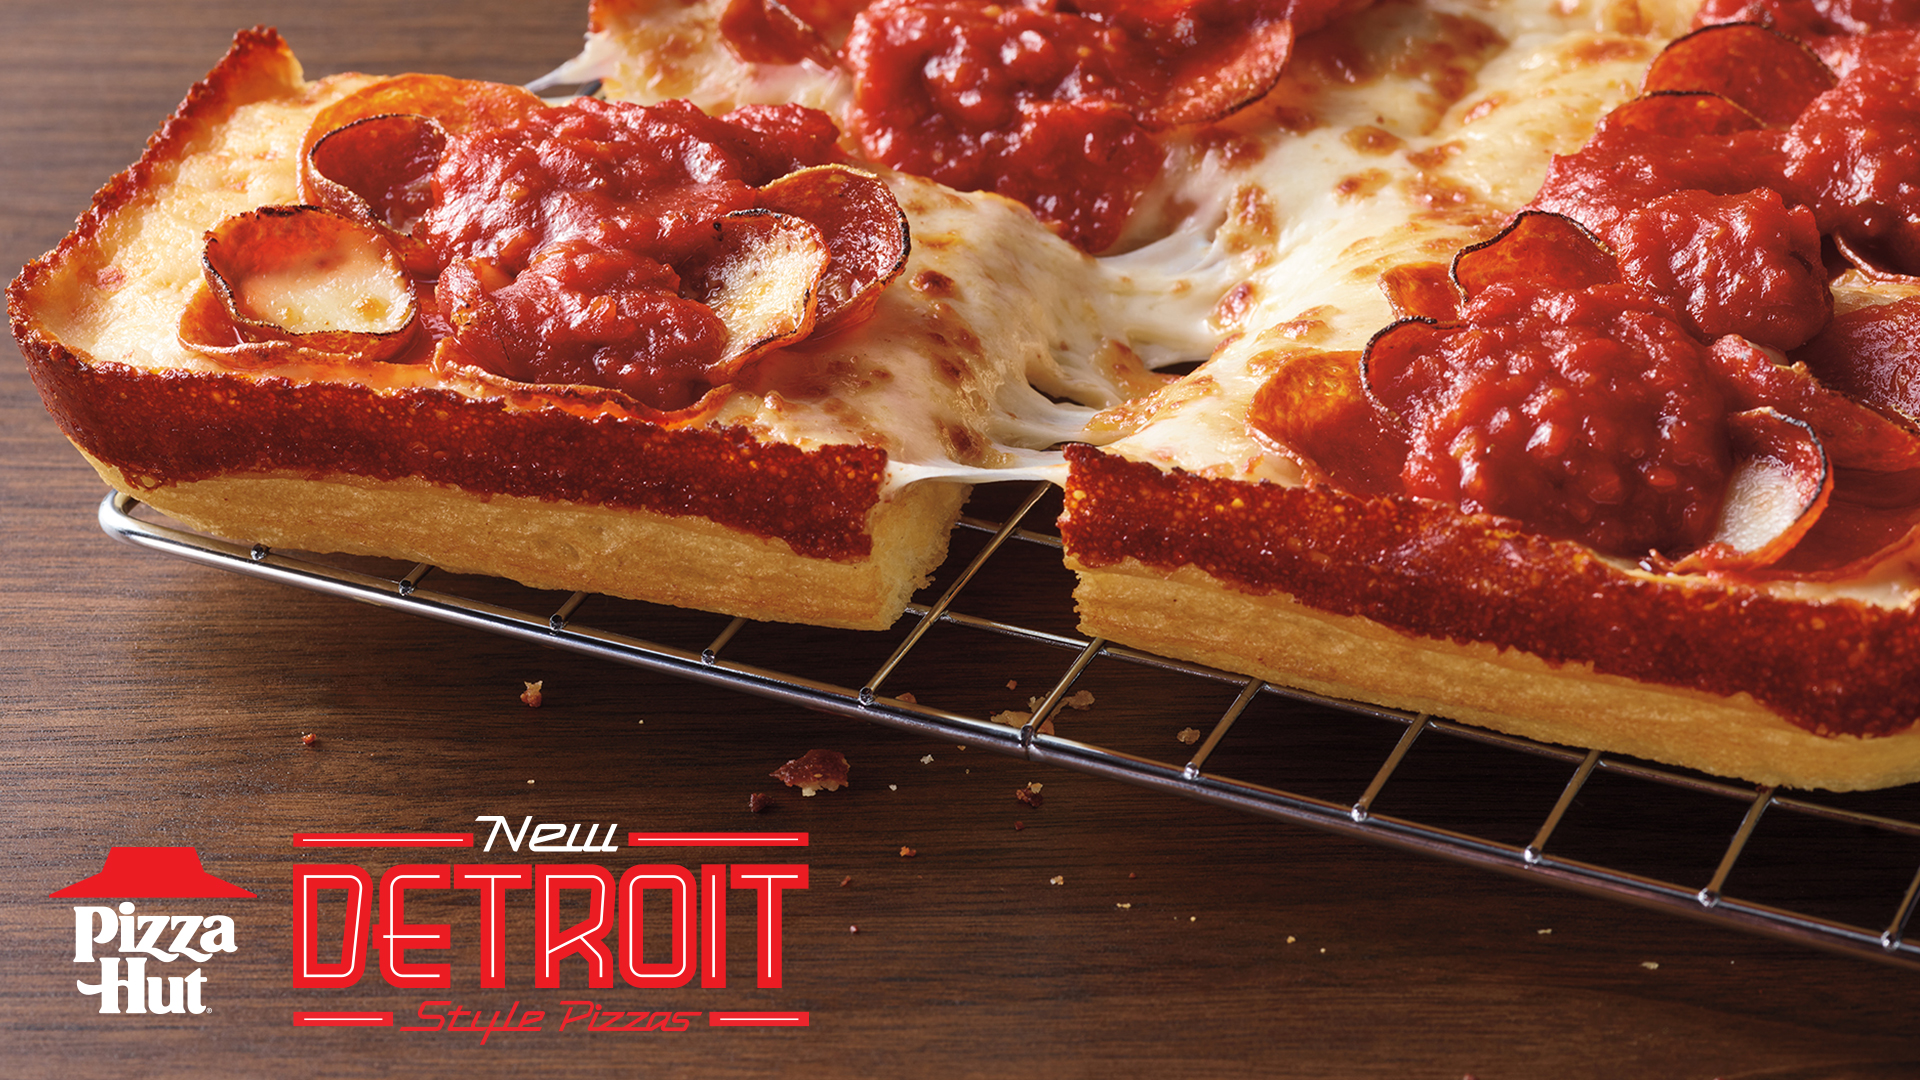 Close-up of a Detroit-style pizza with caramelized crust, cheese, pepperoni, and tomato sauce on top.